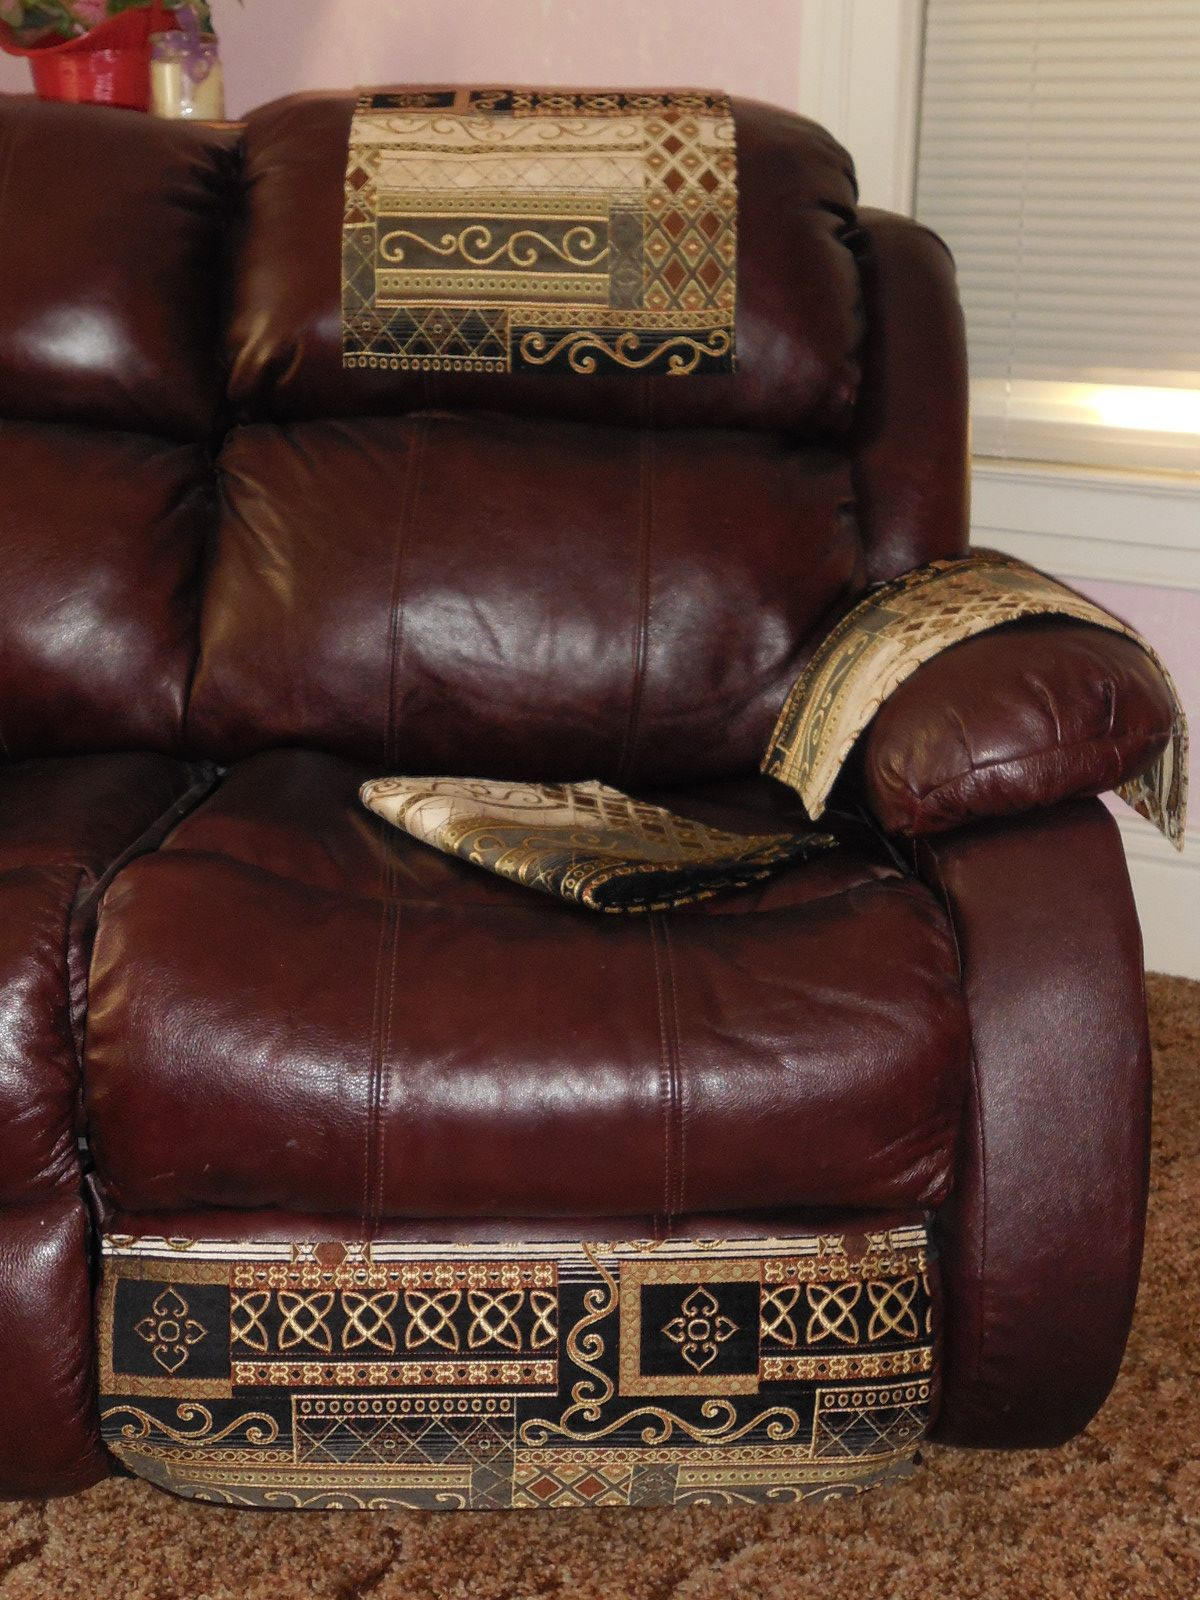 4pc Set To Help Protect Your Furniture More Pictures At Website Custom Orders Available With